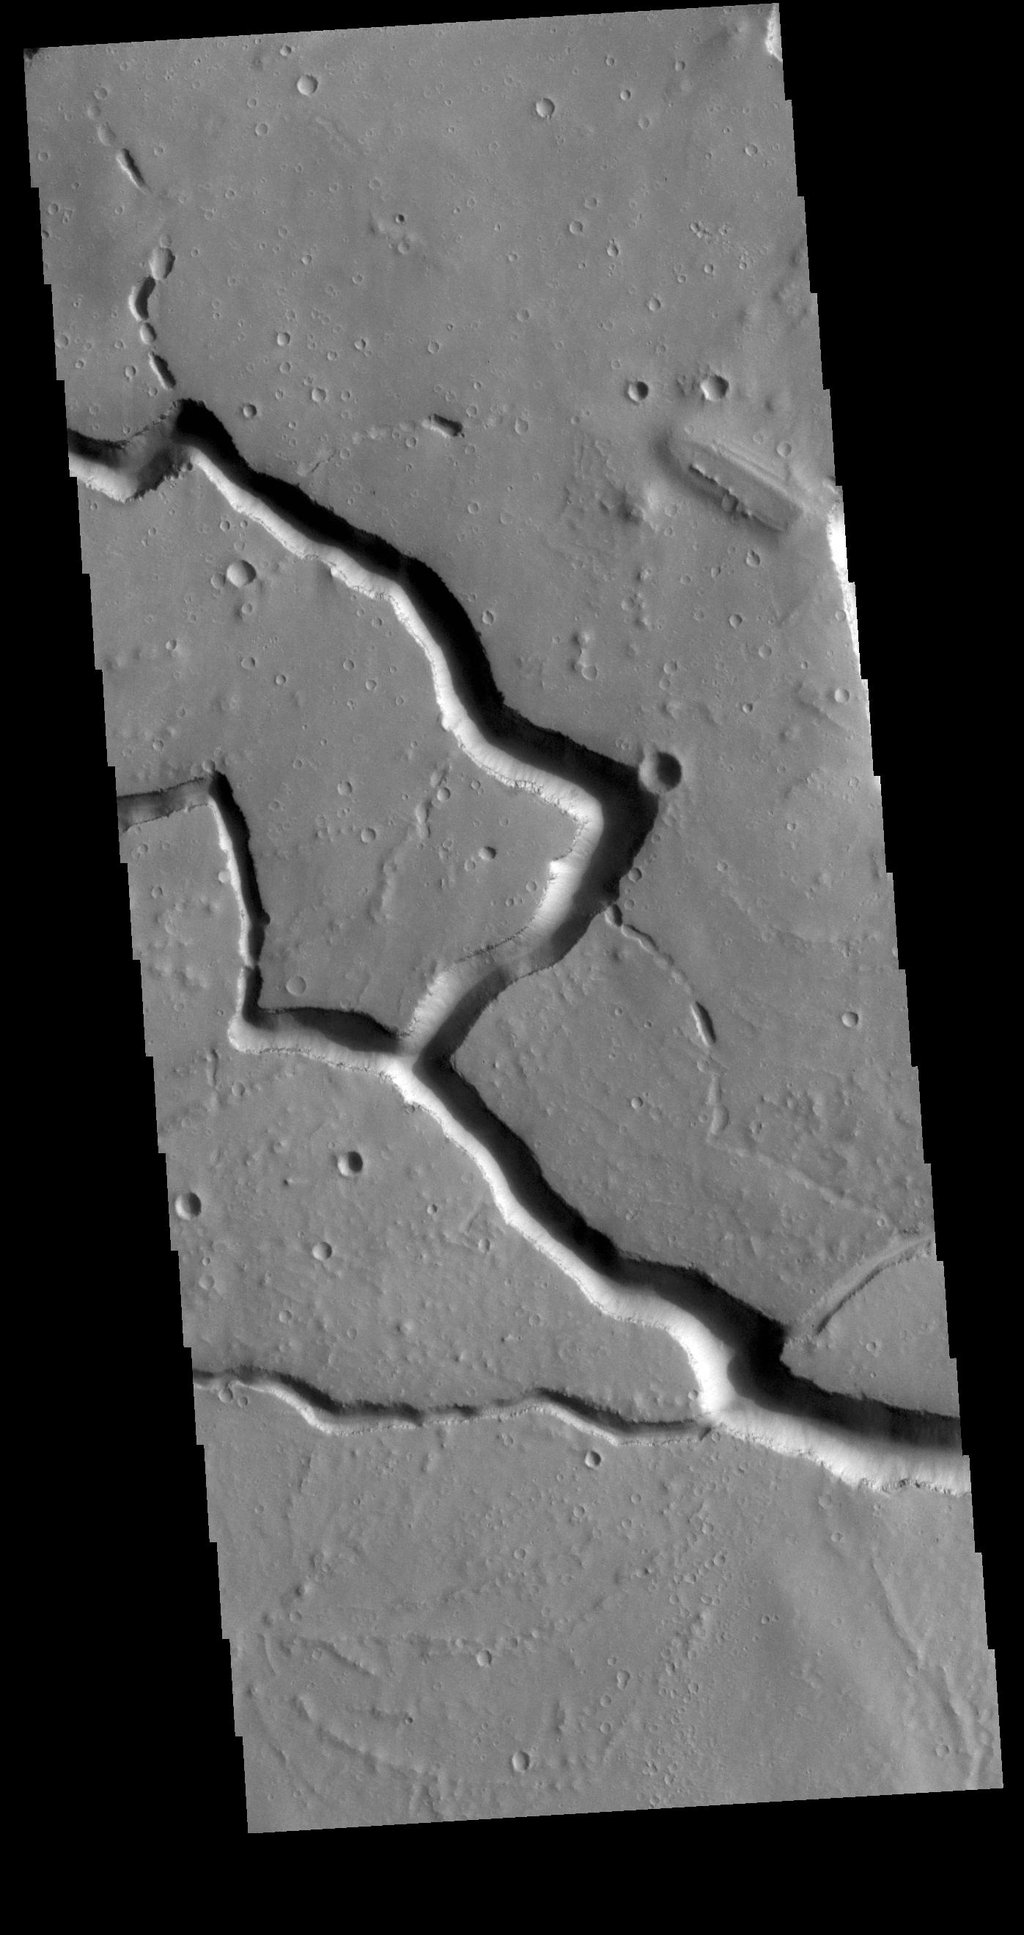 This image from NASA's Mars Odyssey shows the central portion of Hephaestus Fossae.